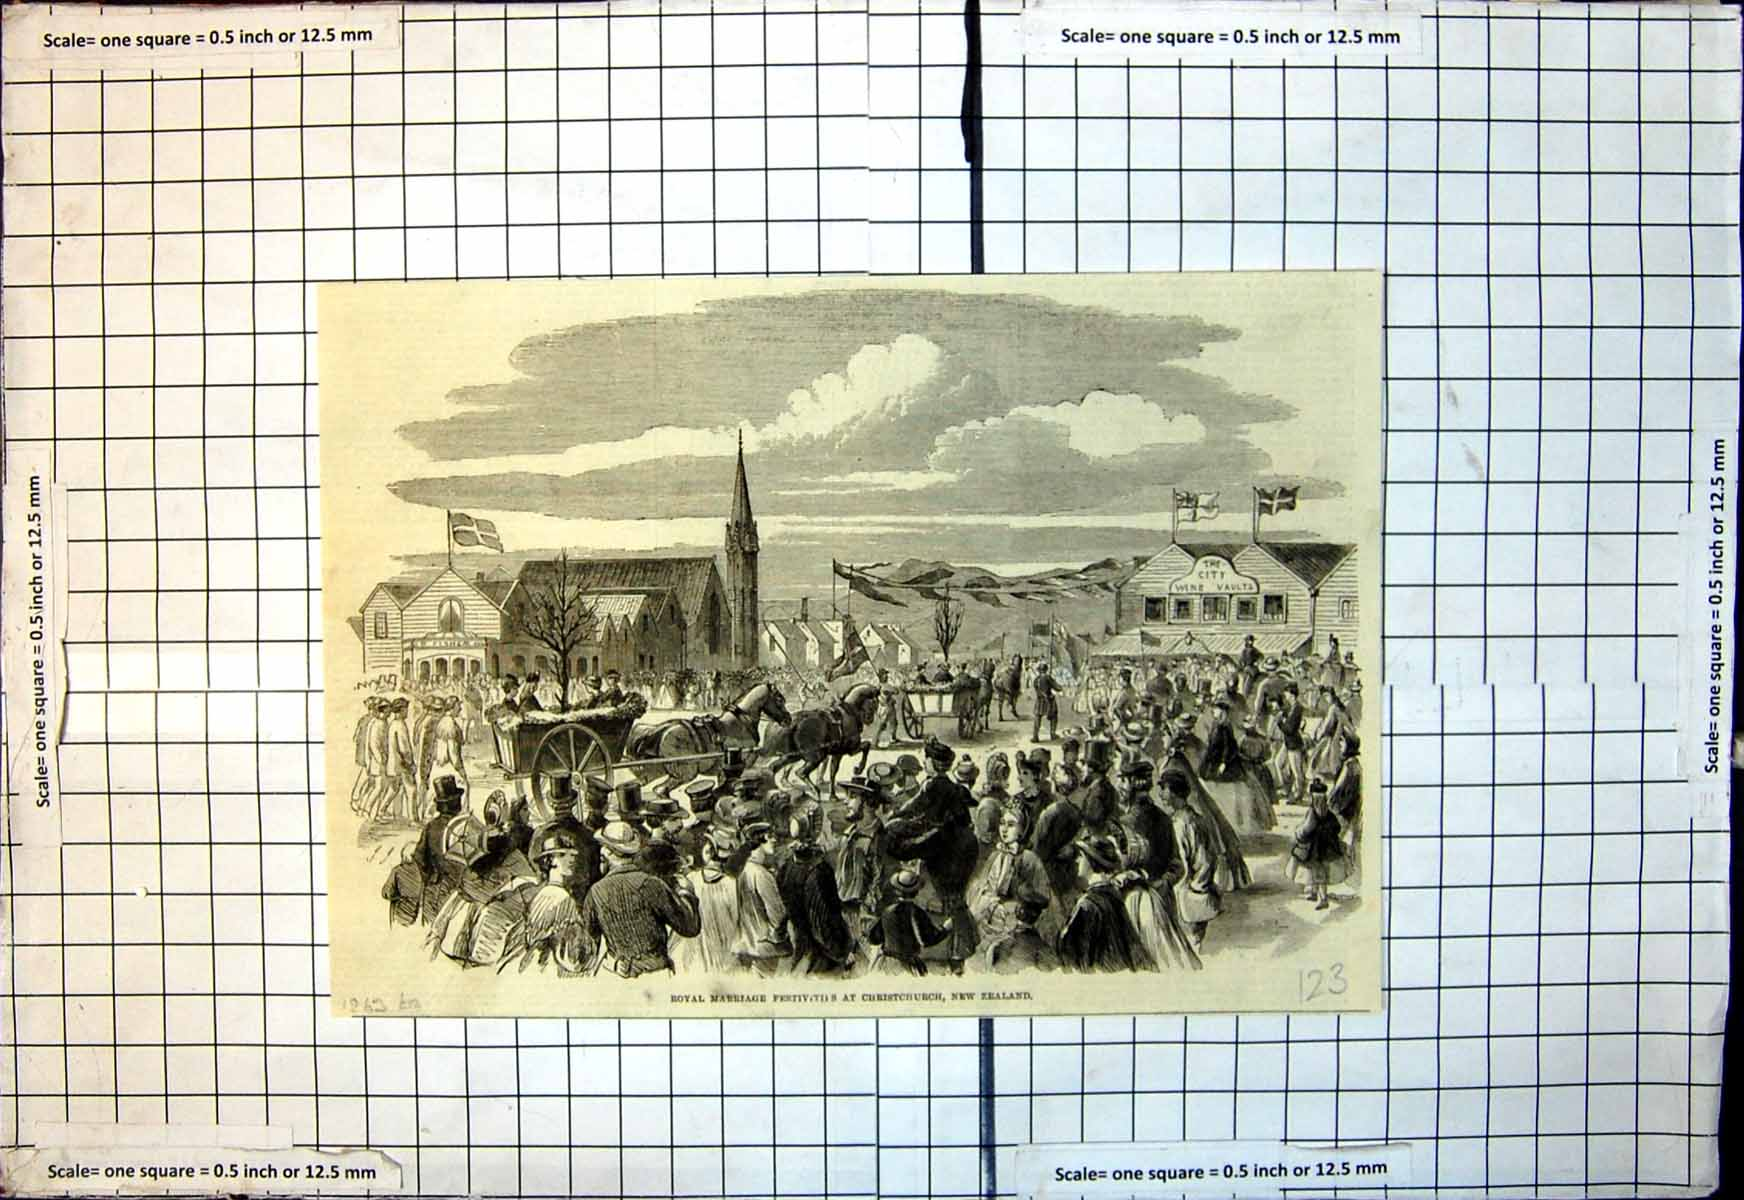 Antique-Old-Print-Royal-Marriage-Festivities-Christchurch-New-Zealand-1863-19th